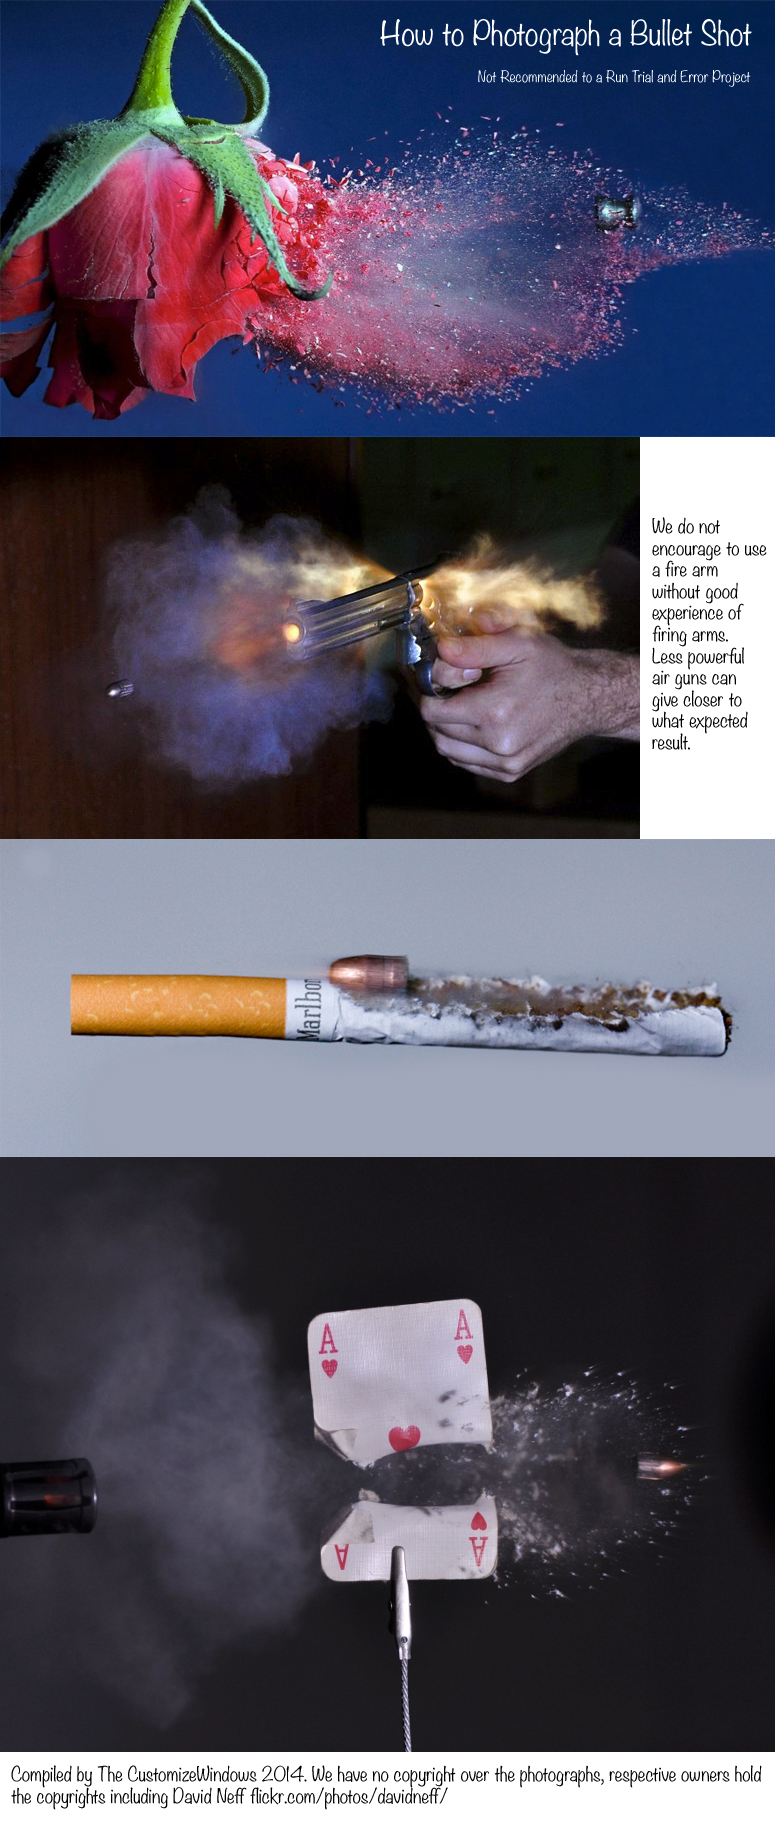 How-to-Photograph-a-Bullet-Shot